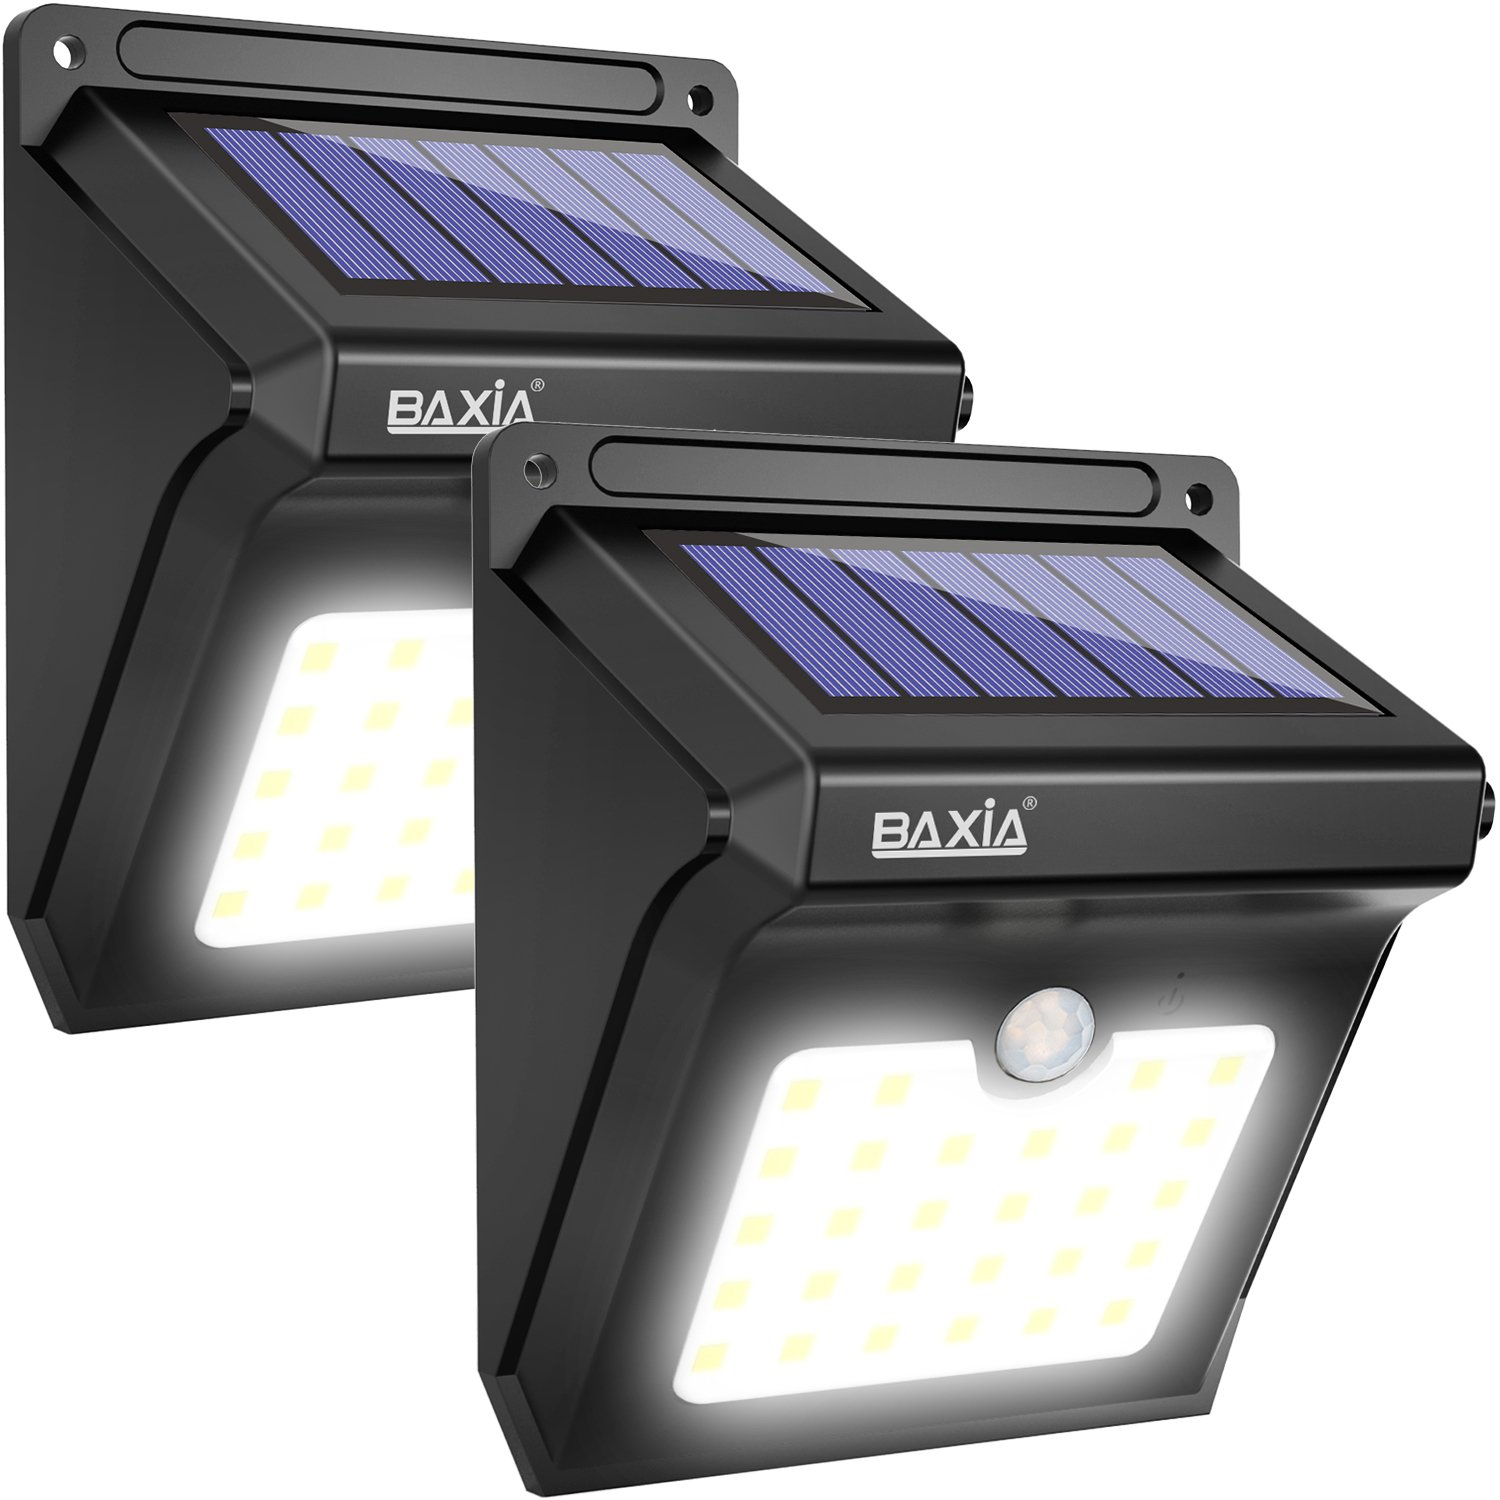 BAXiA Solar Lights 28 LED,Upgraded Solar Powered Security Lights,Waterproof Wireless Motion Sensor Outdoor Lighting for Front Door,Outside Wall,Patio,Yard,Fence,Garden,Pathyway,Driveway (400LM,2 Packs) [Energy Class A+++] GLS-B-UKSL28-2